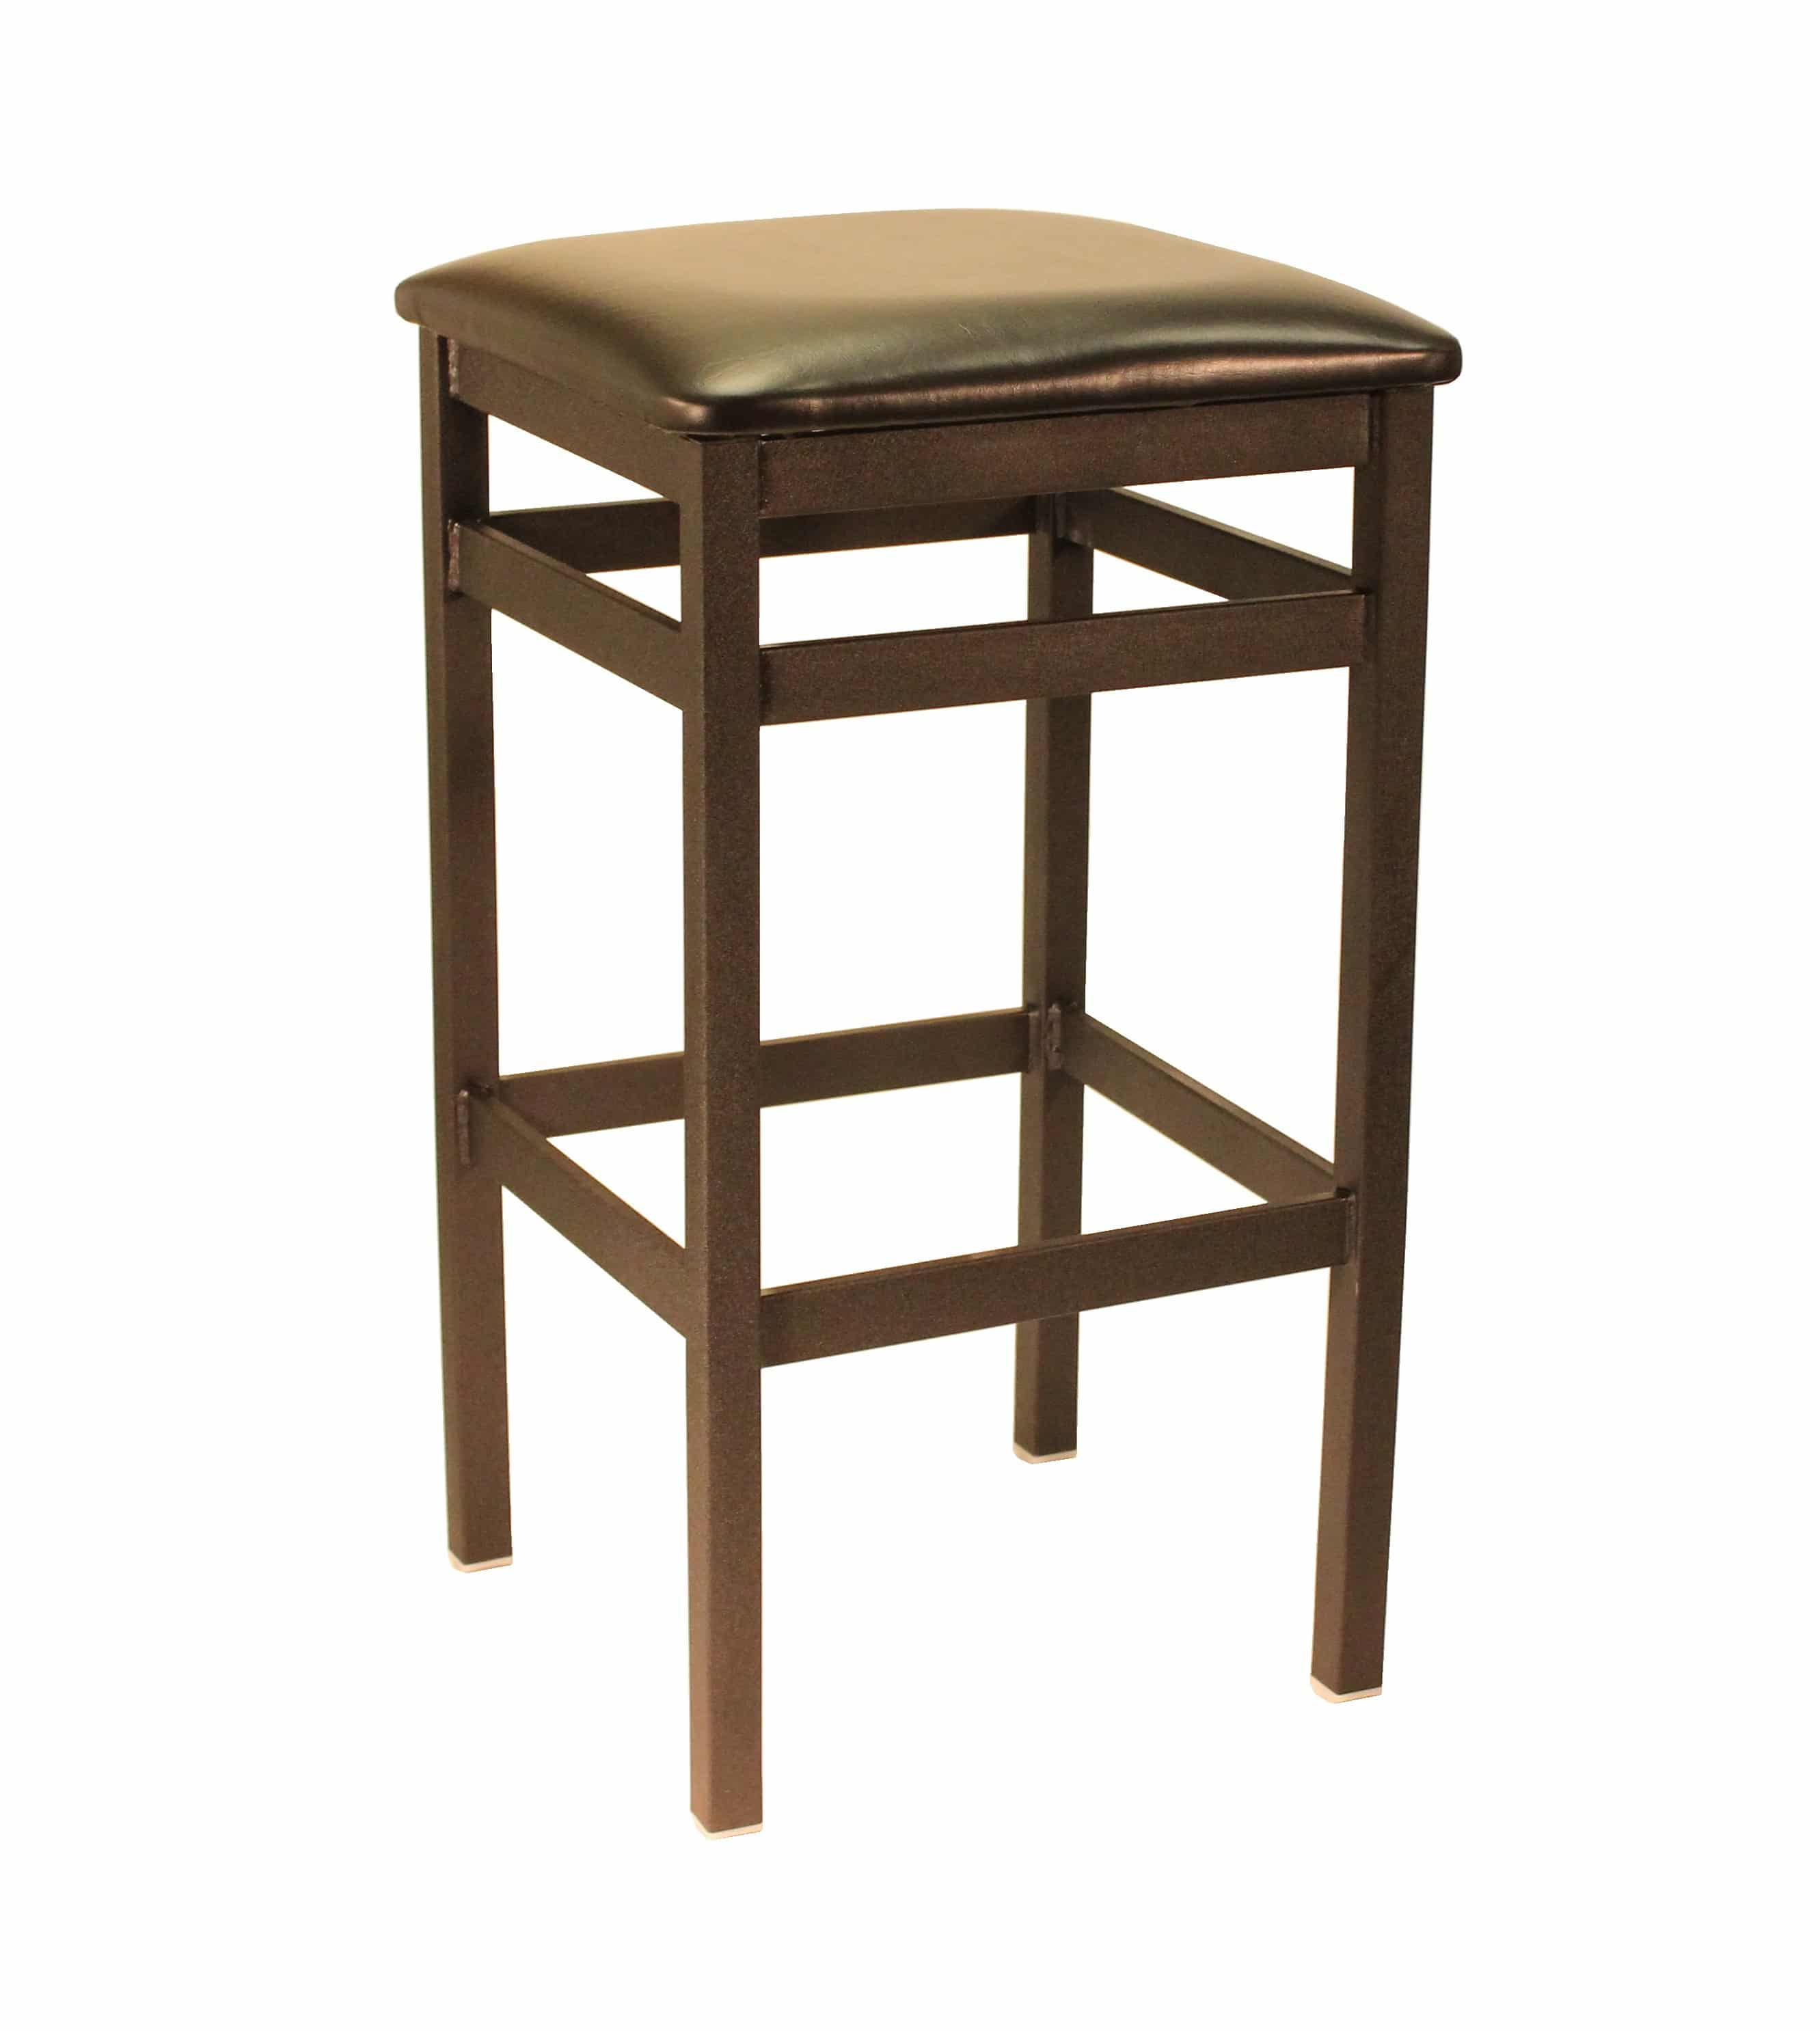 Magnificent Heavy Duty Square Seat Backless Stool Model 805 Pabps2019 Chair Design Images Pabps2019Com